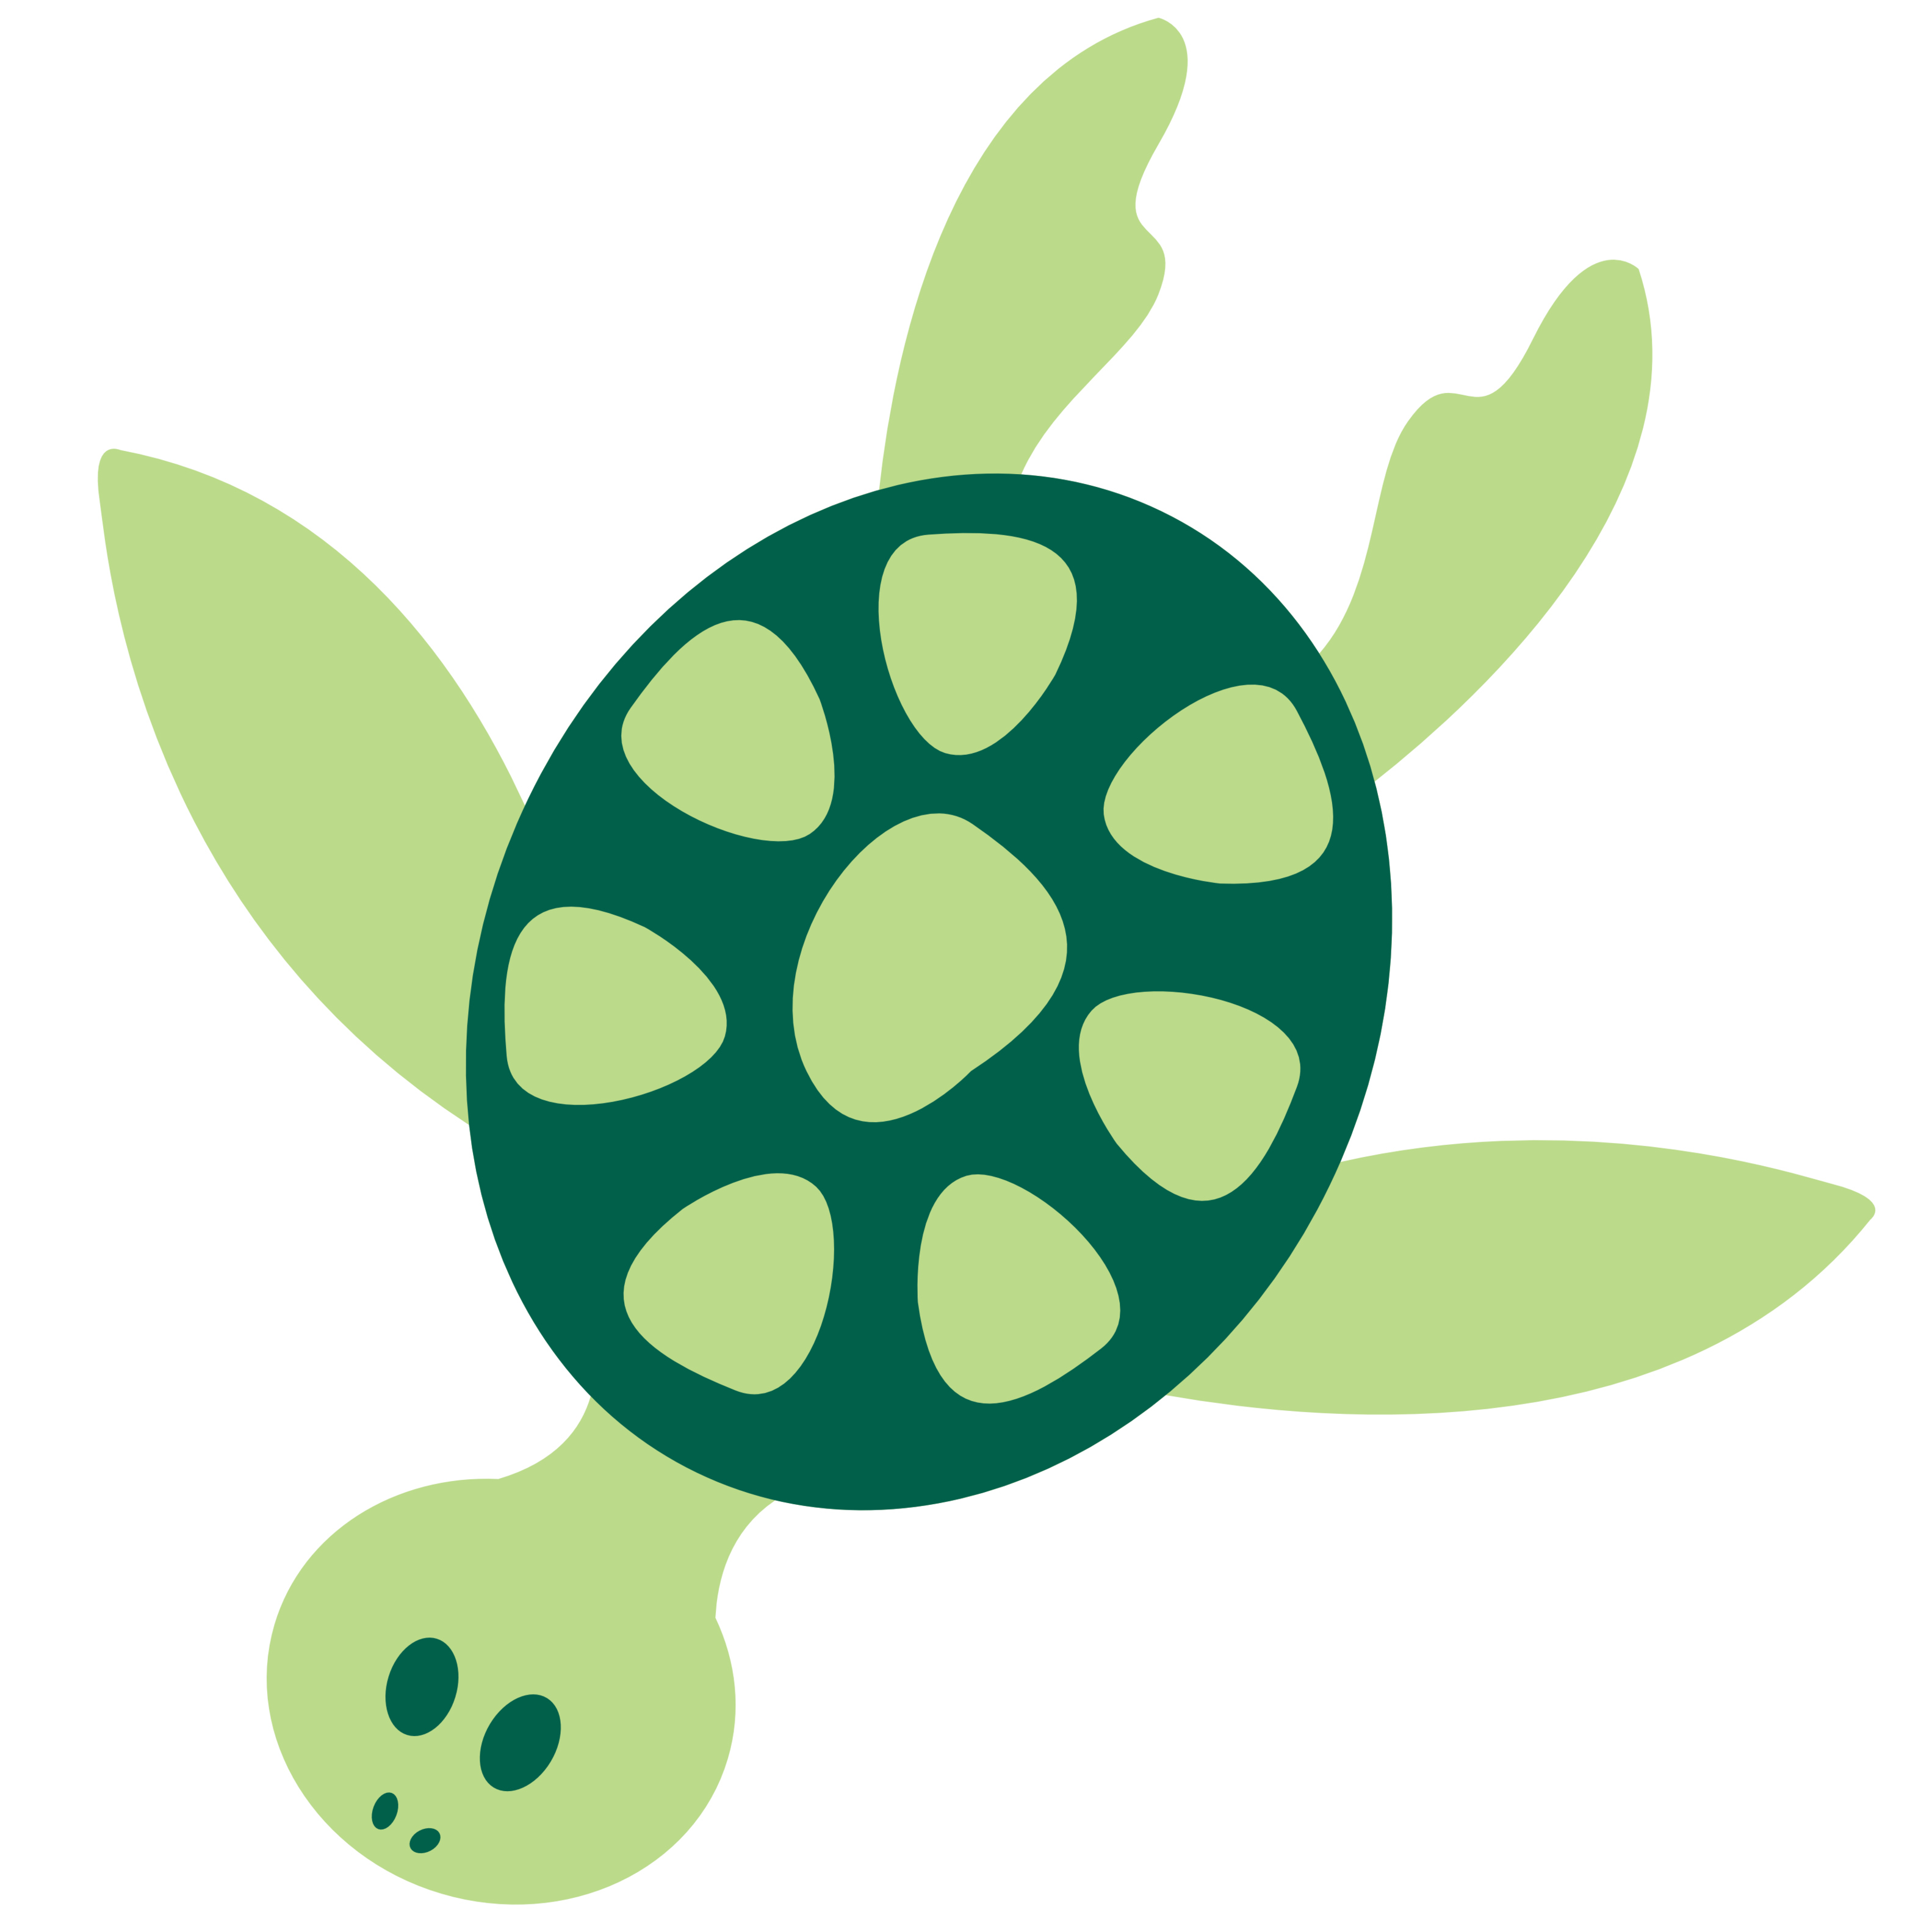 Turtle clipart svg graphic freeuse library Sea Turtle Clipart – Gclipart.com graphic freeuse library